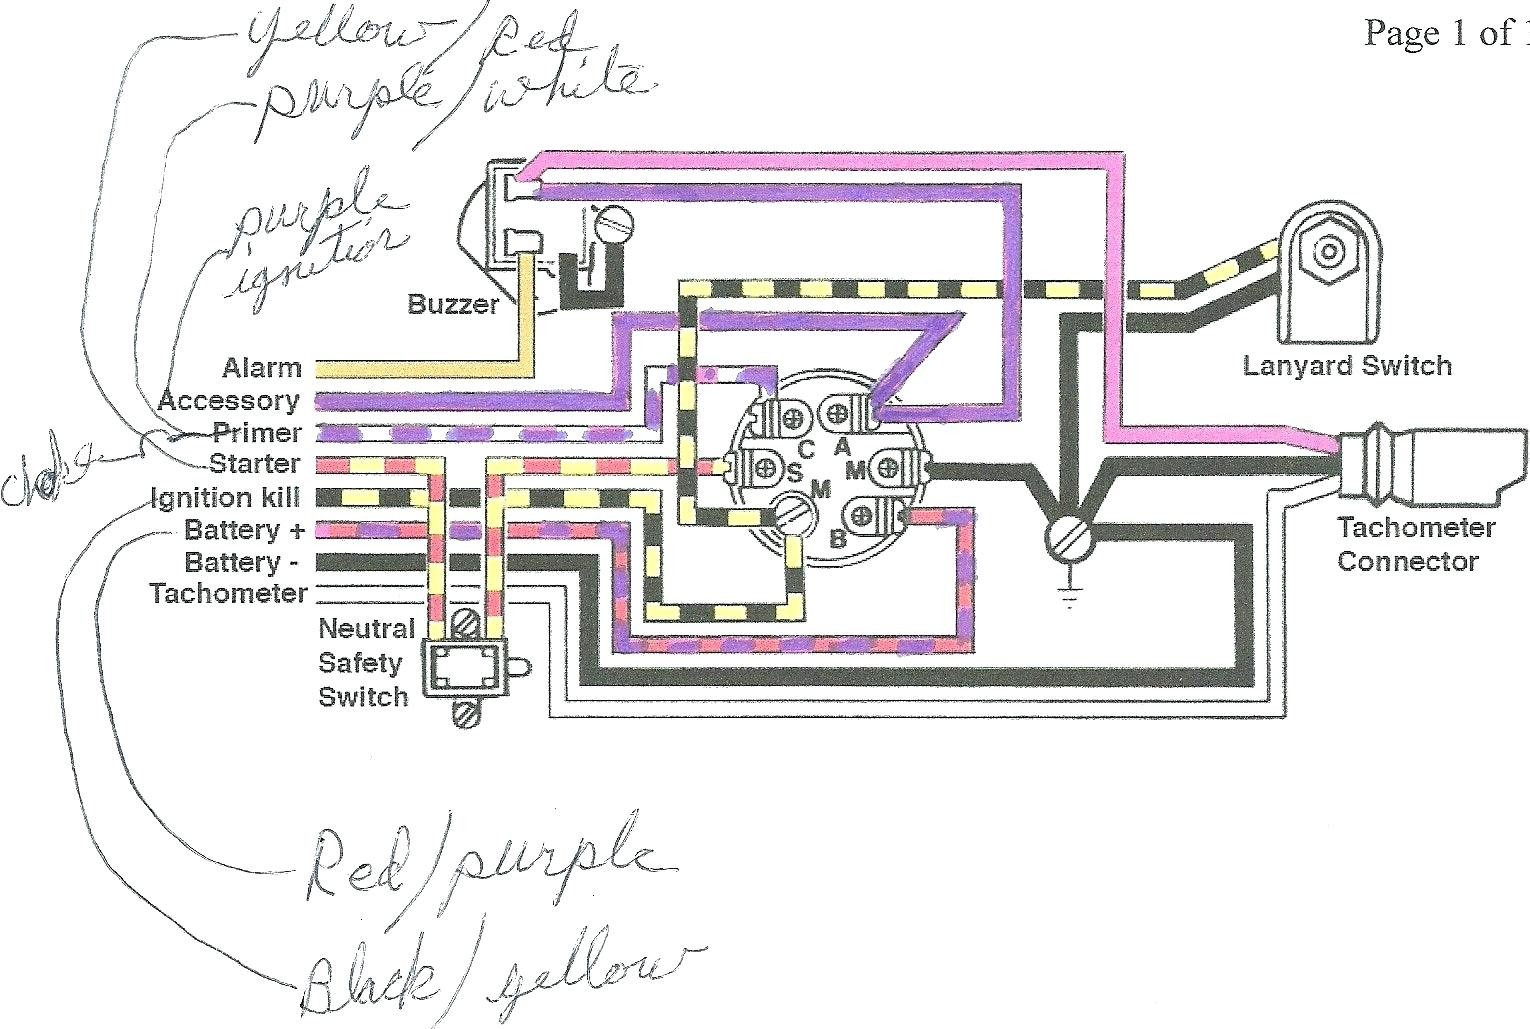 Murray Riding Lawn Mower Wiring Diagram Ignition Switch Universal In - Wiring Diagram For Murray Riding Lawn Mower